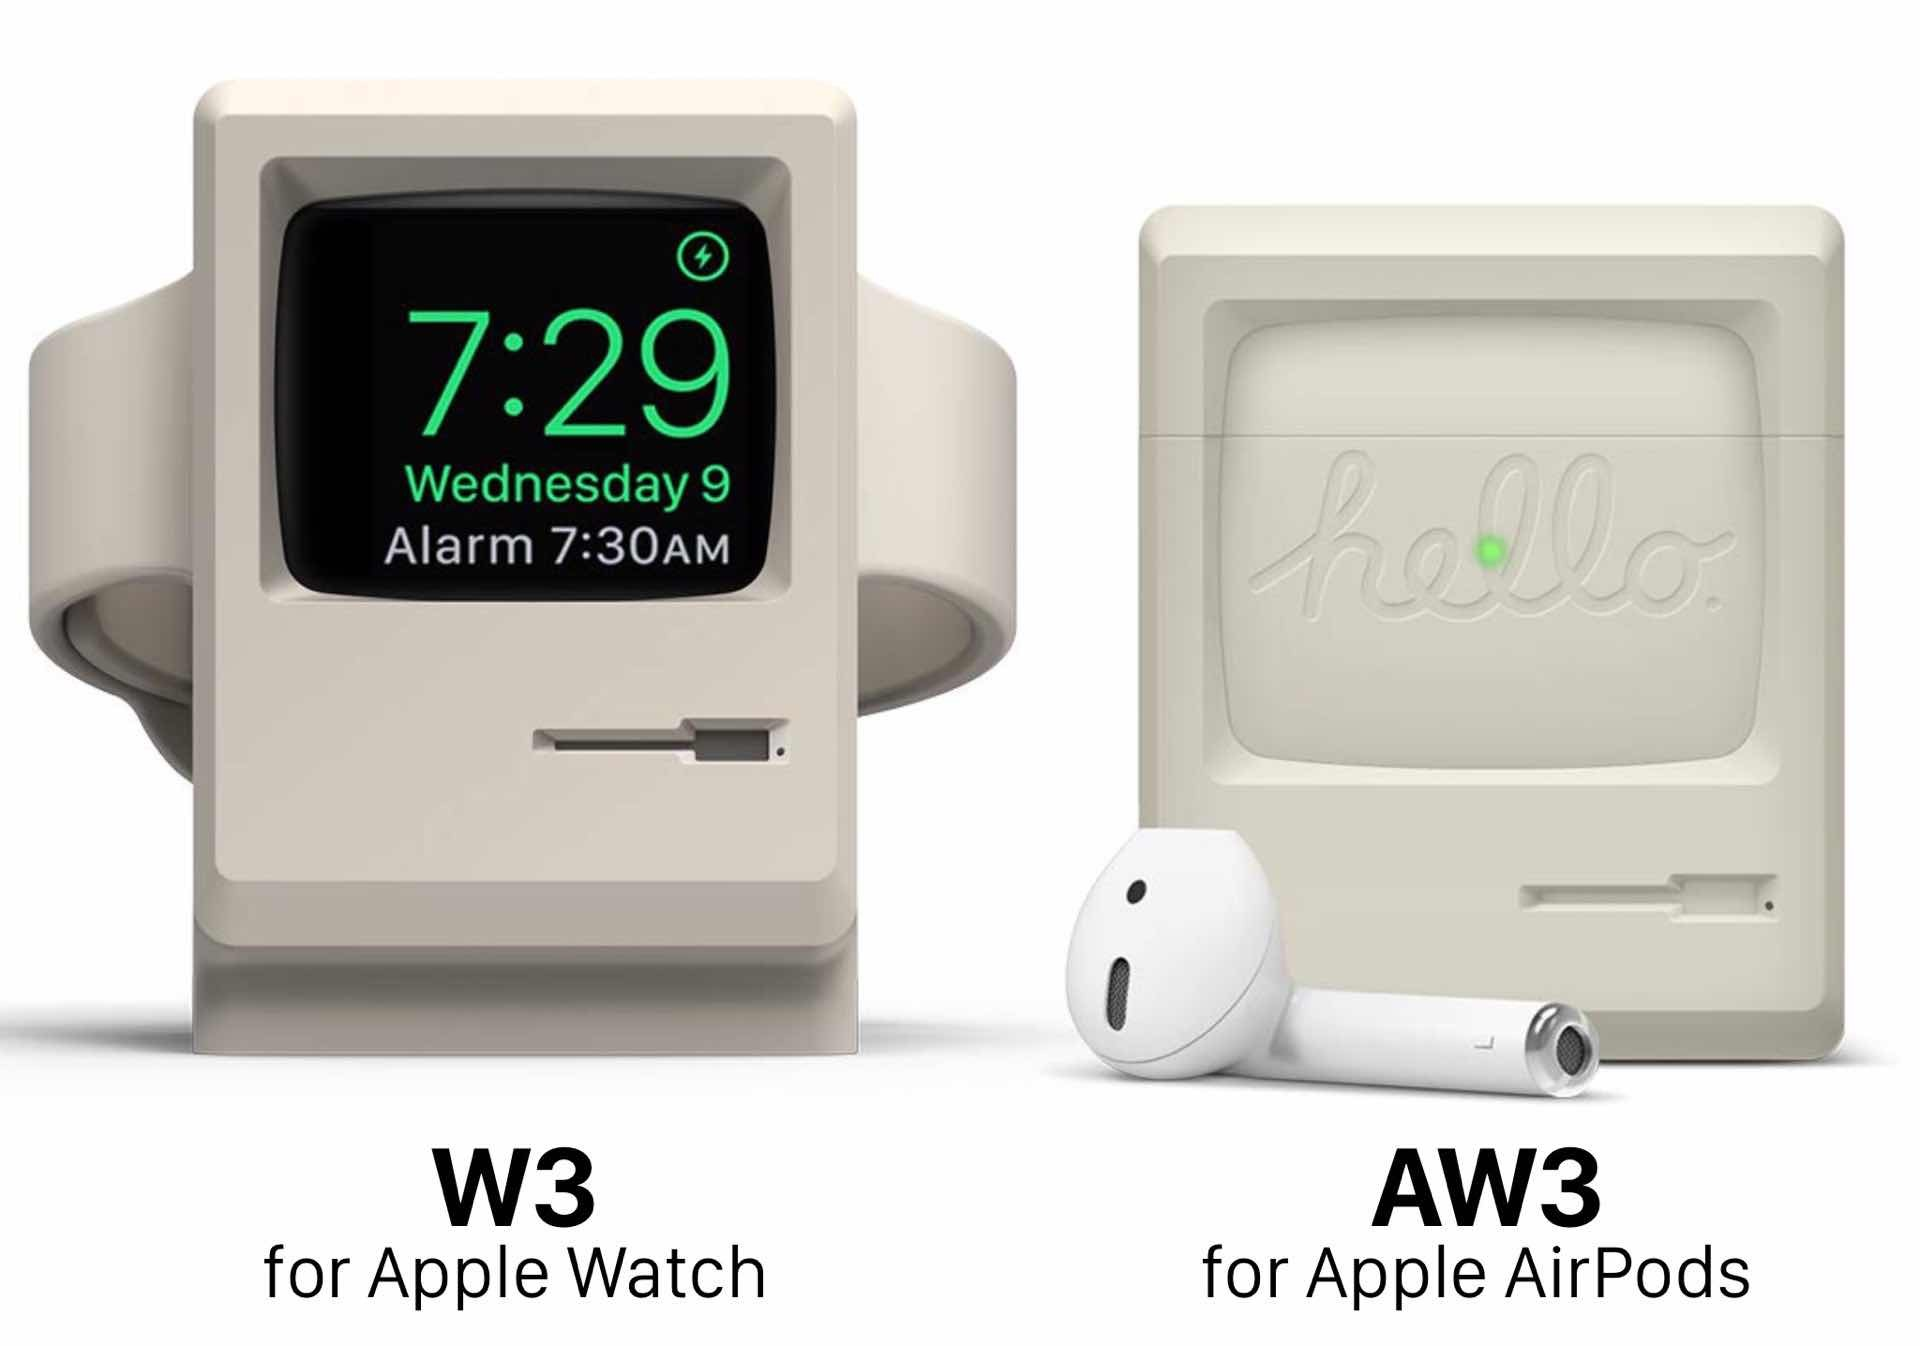 Elago AW3 for AirPods vs W3 for Apple Watch